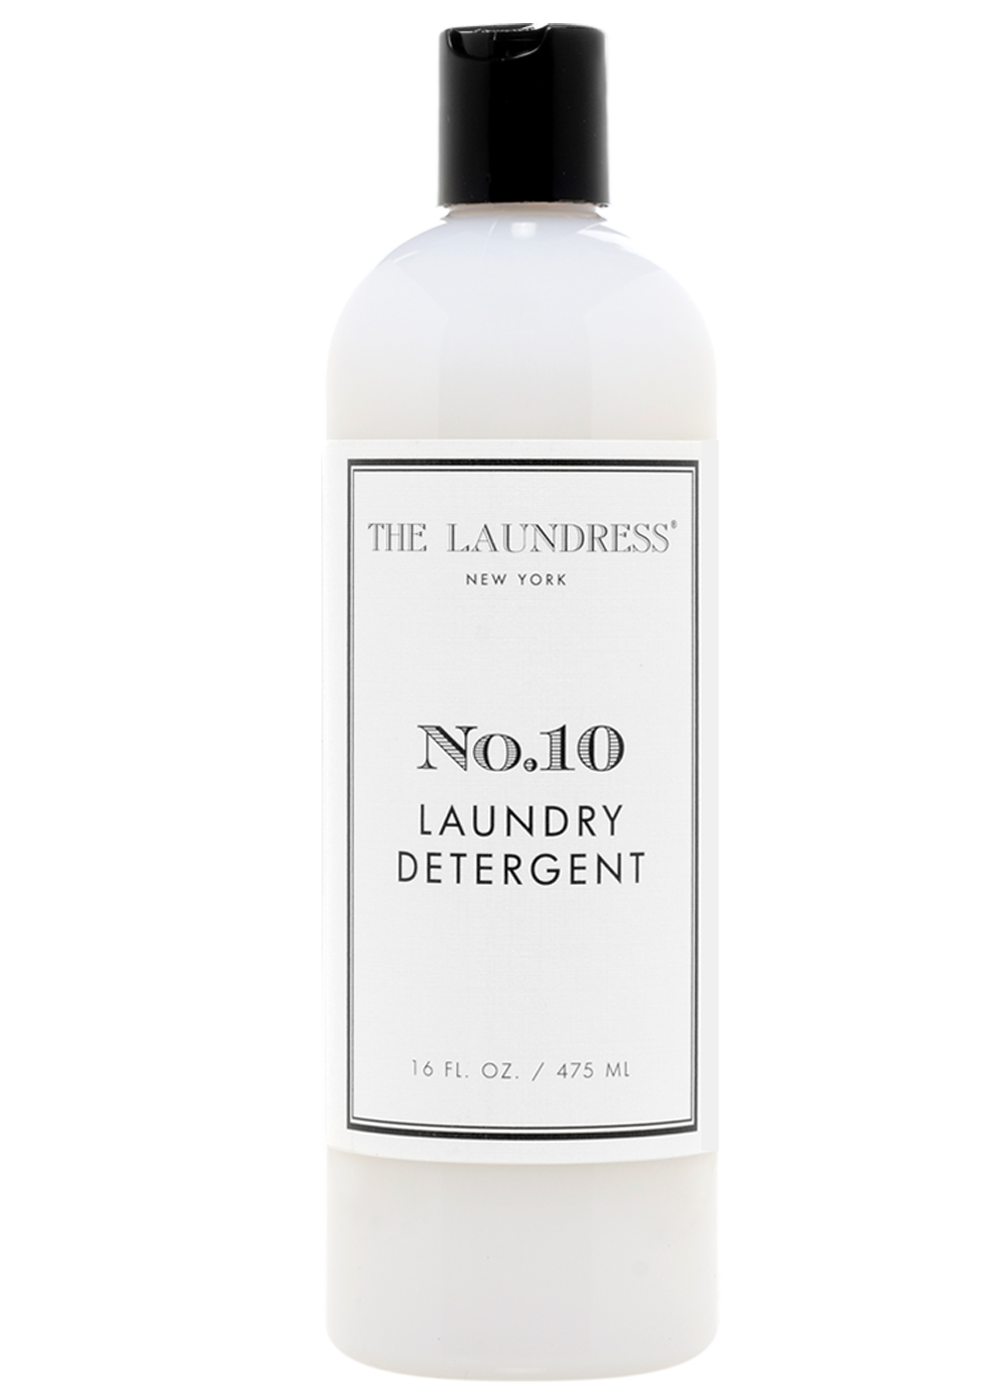 number 10 laundry detergent